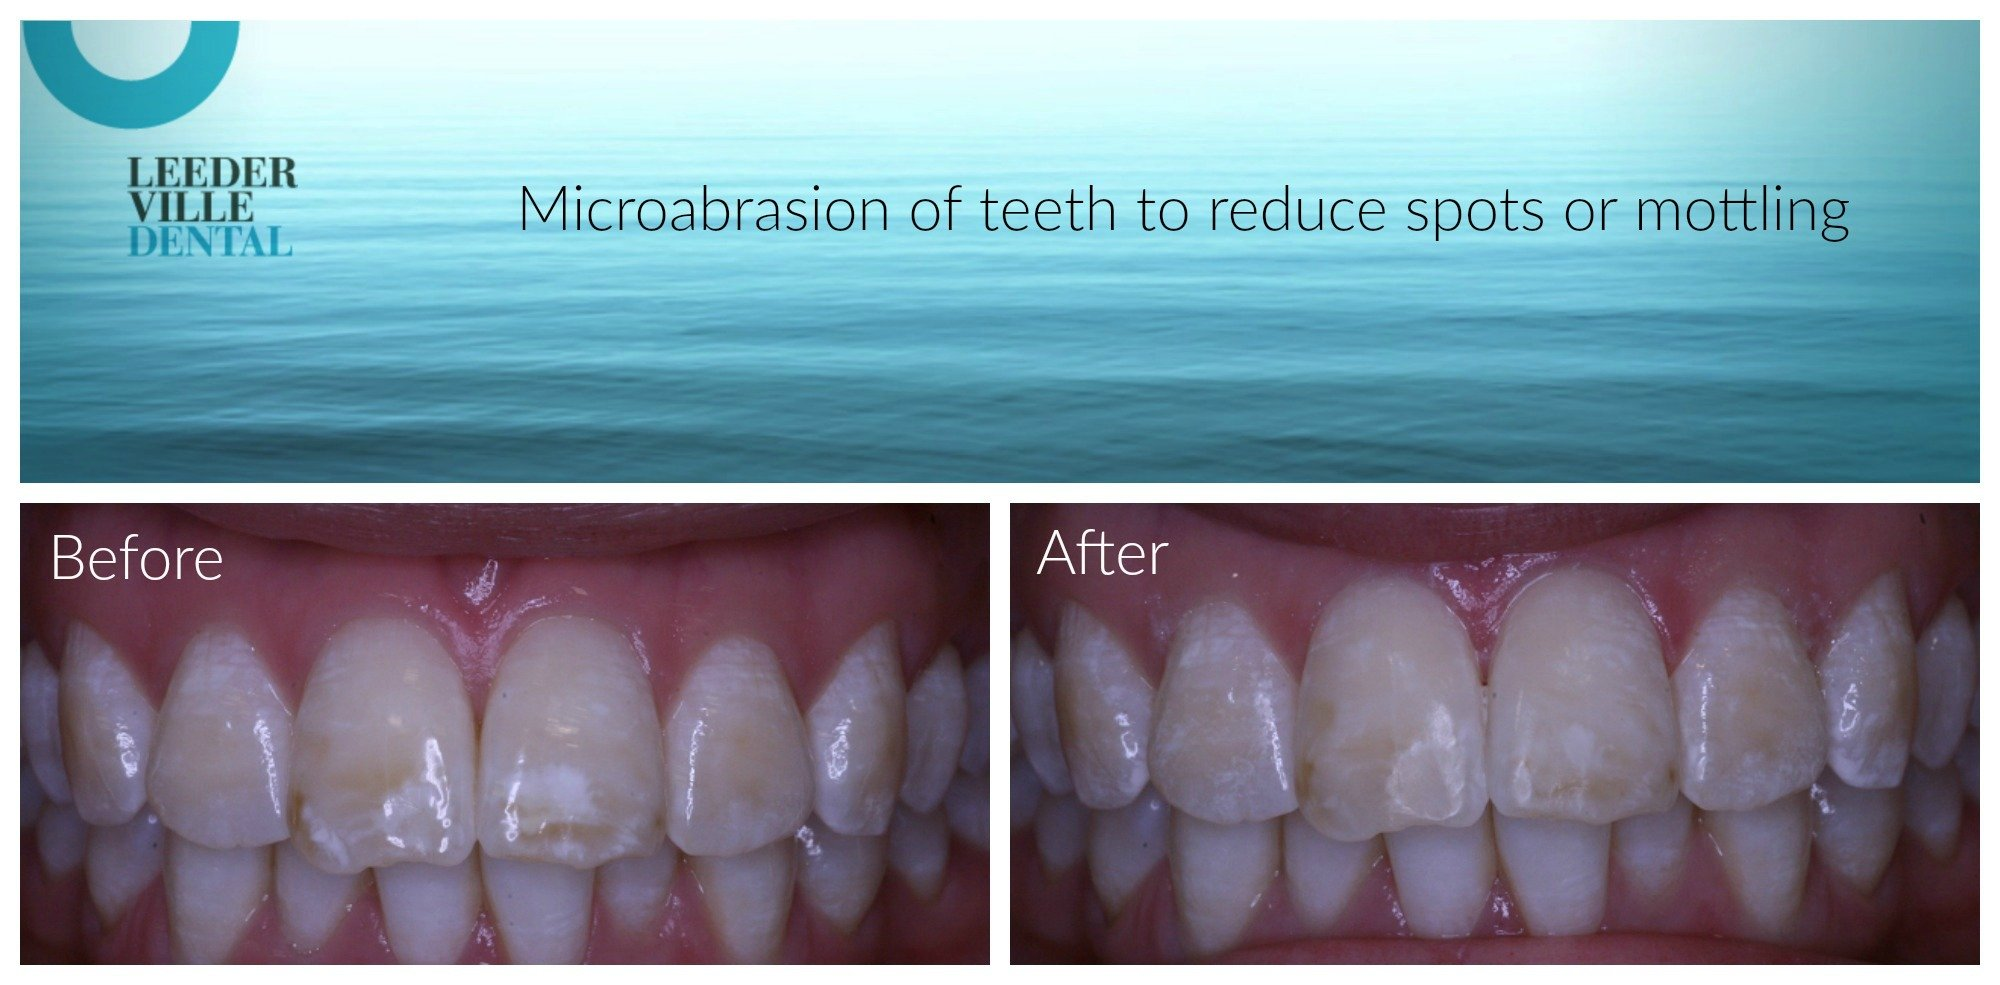 spots can be removed from teeth using microabrasion